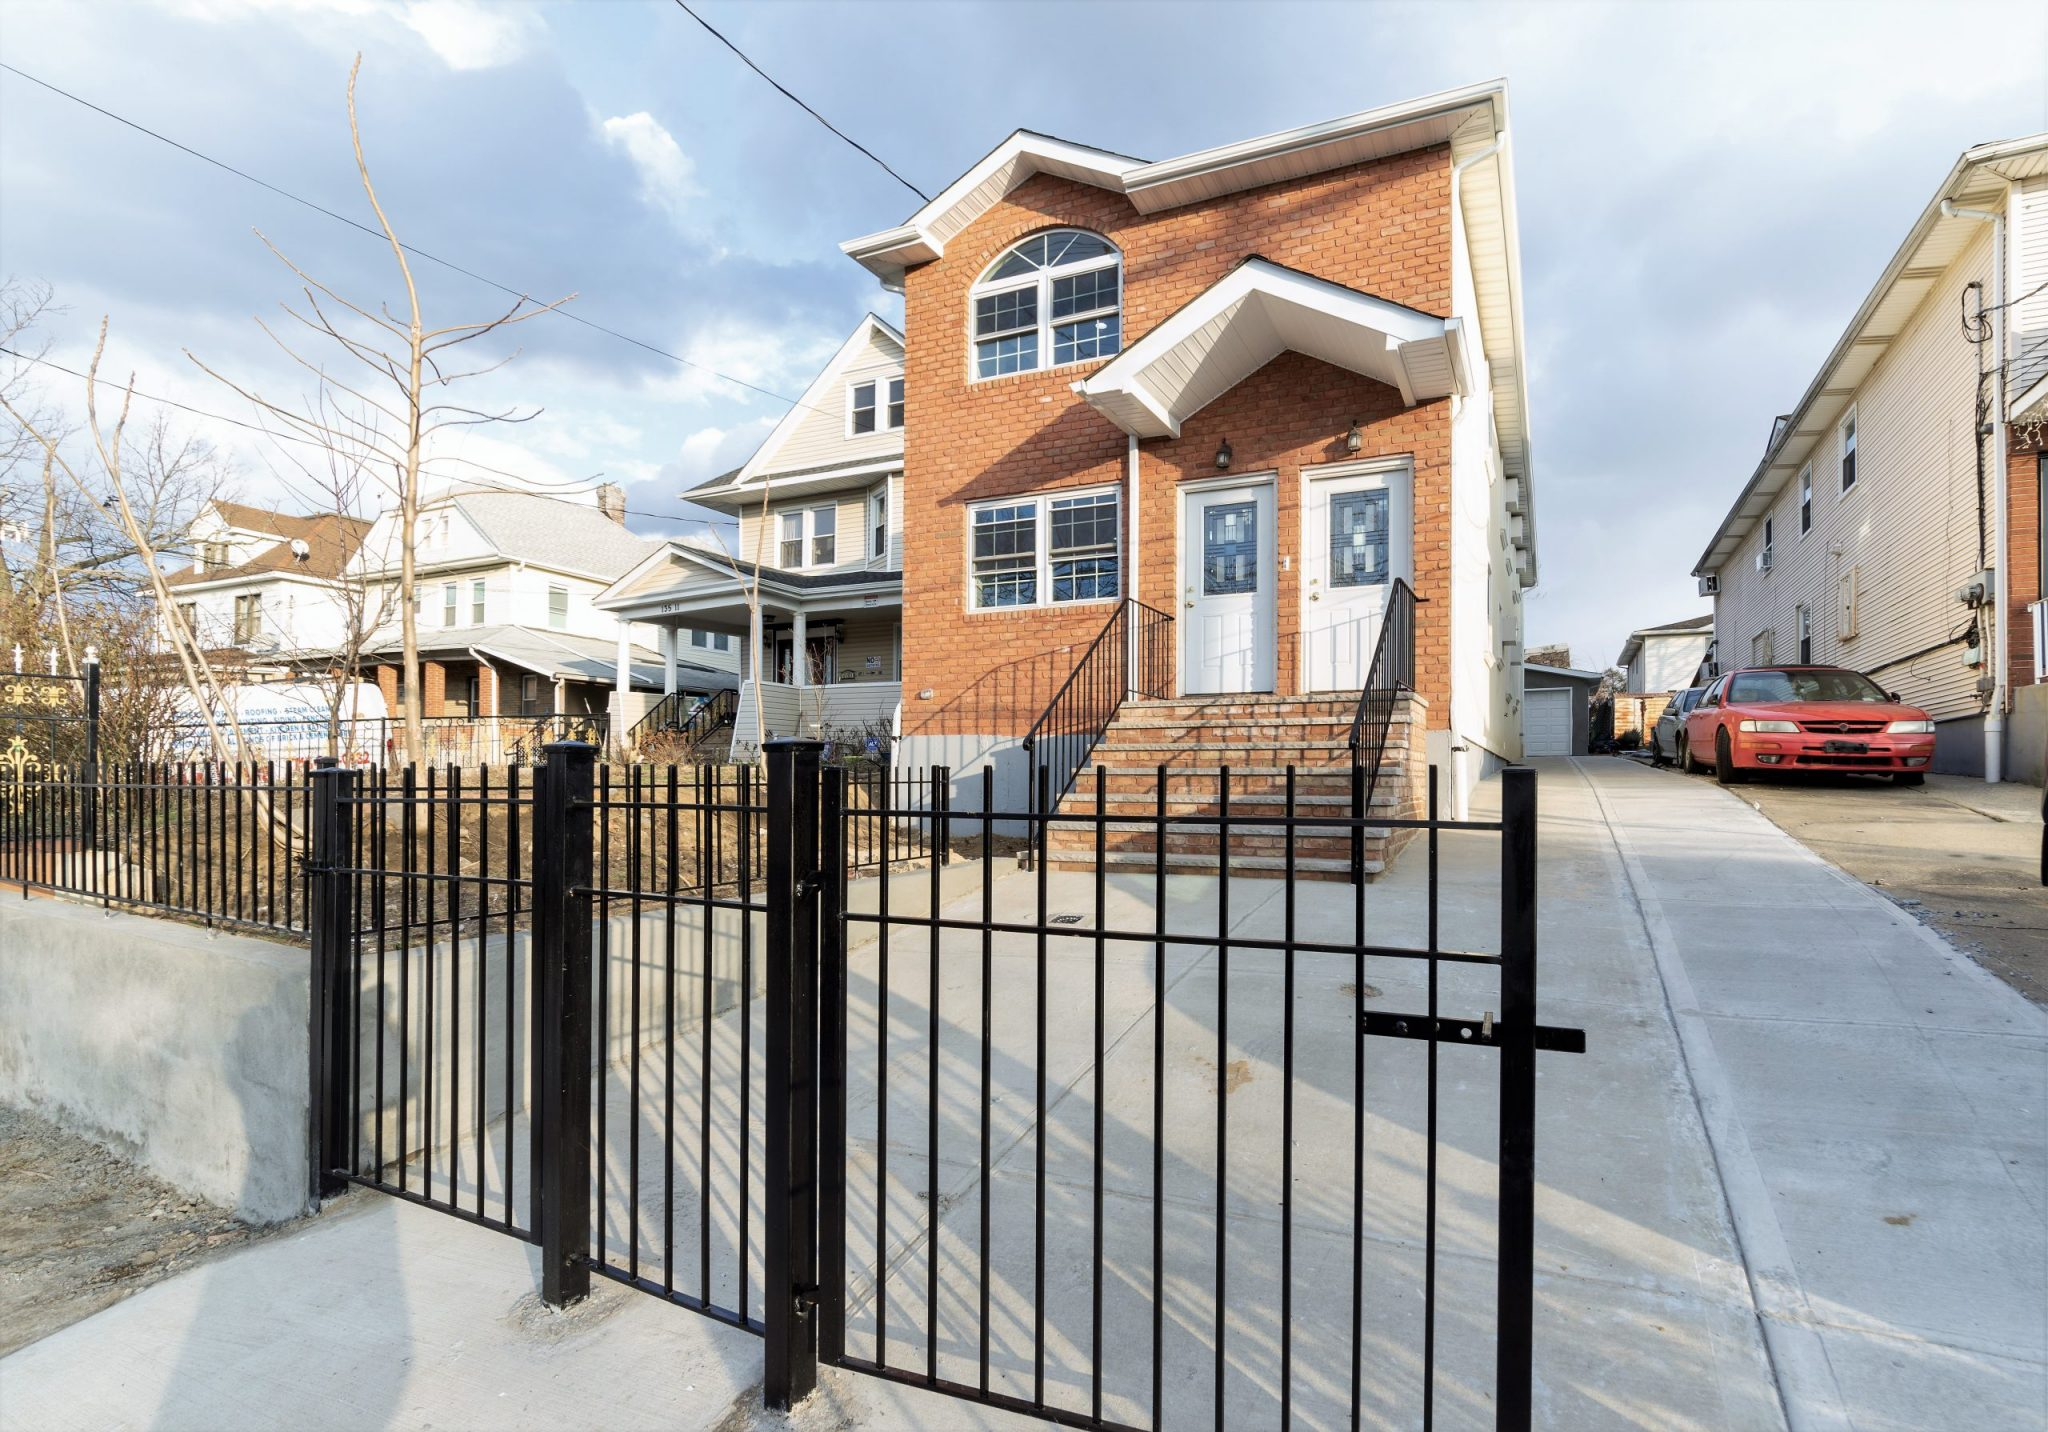 New Two Family for Sale in Springfield Gardens, Queens NY 11413. Brand New Construction, Detach, Large 2 Family Home!